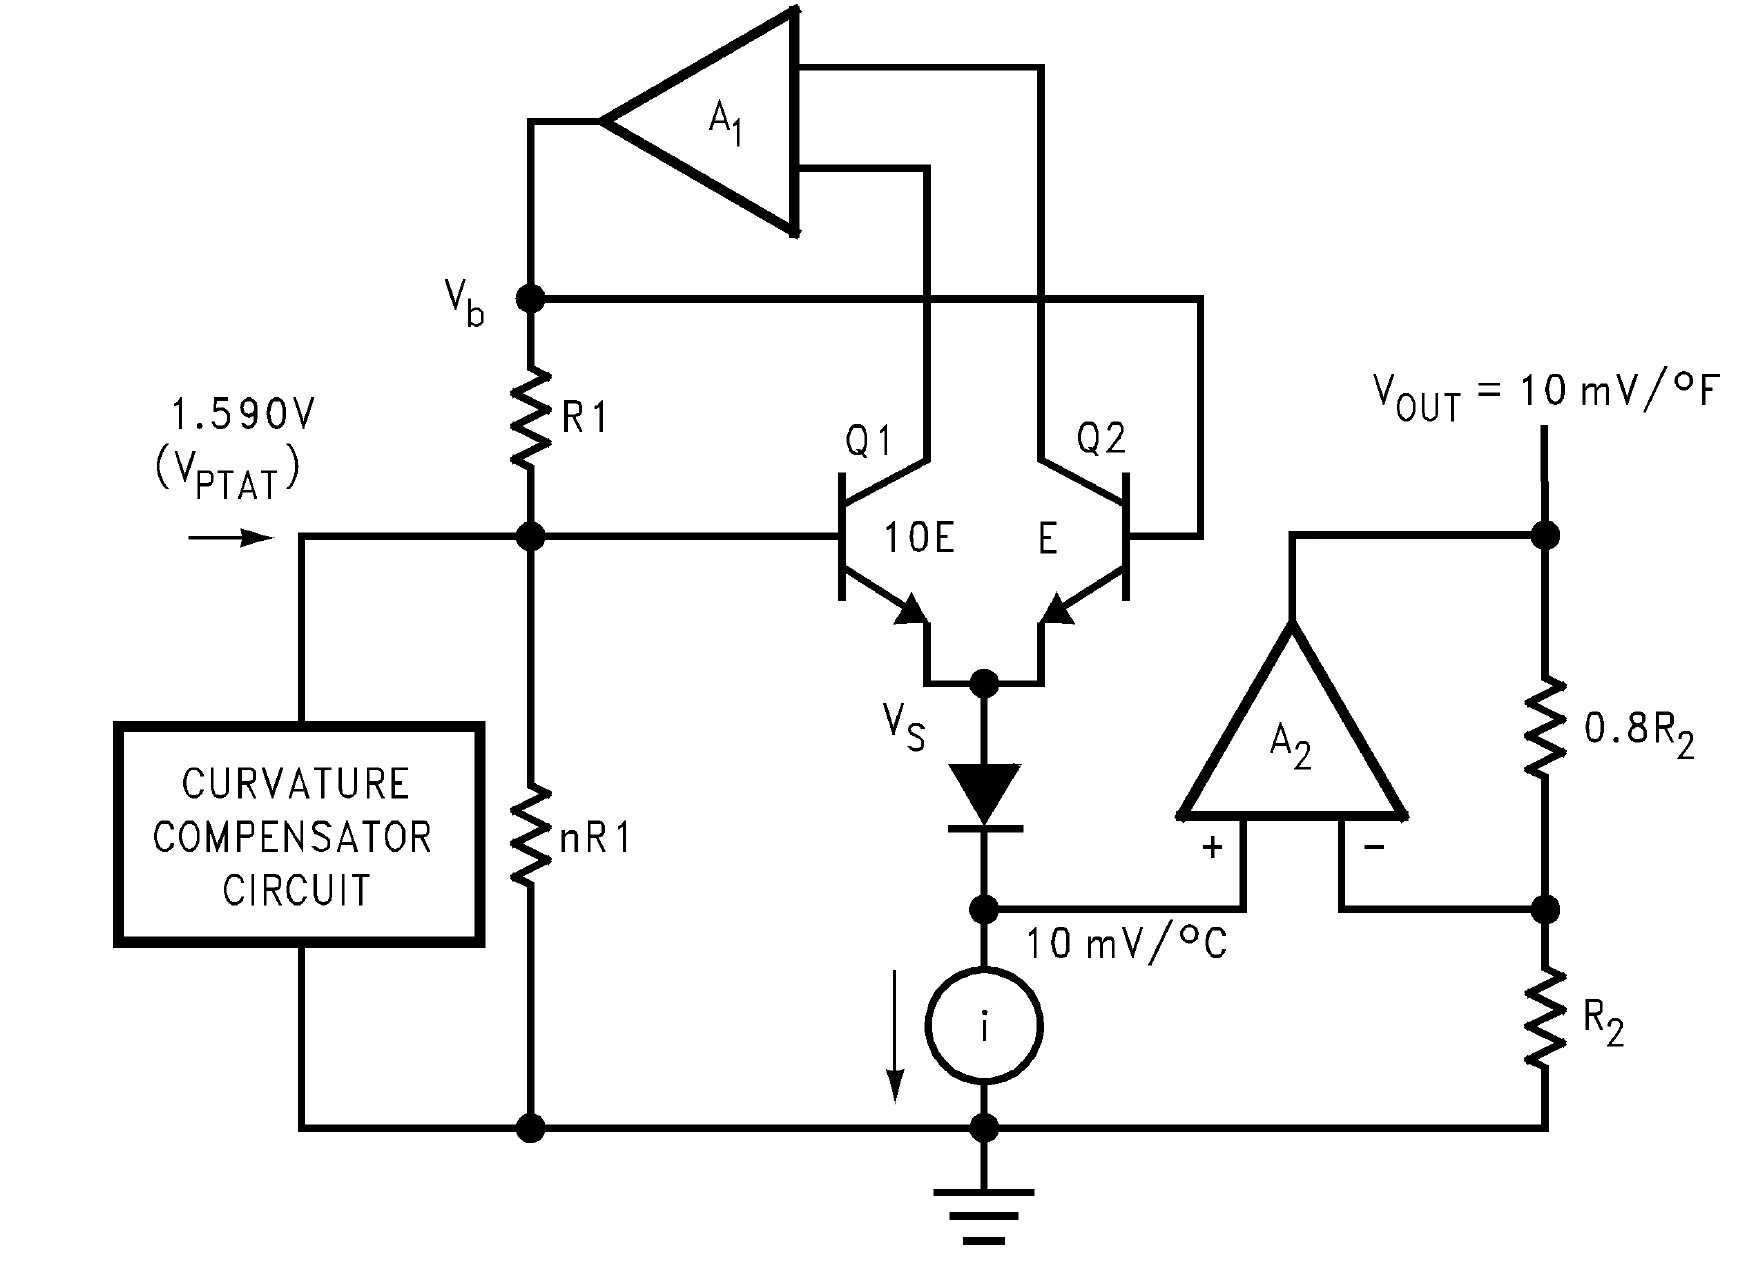 Electric Fence Diagram New New Invisible Fence Wiring Diagram - Invisible Fence Wiring Diagram